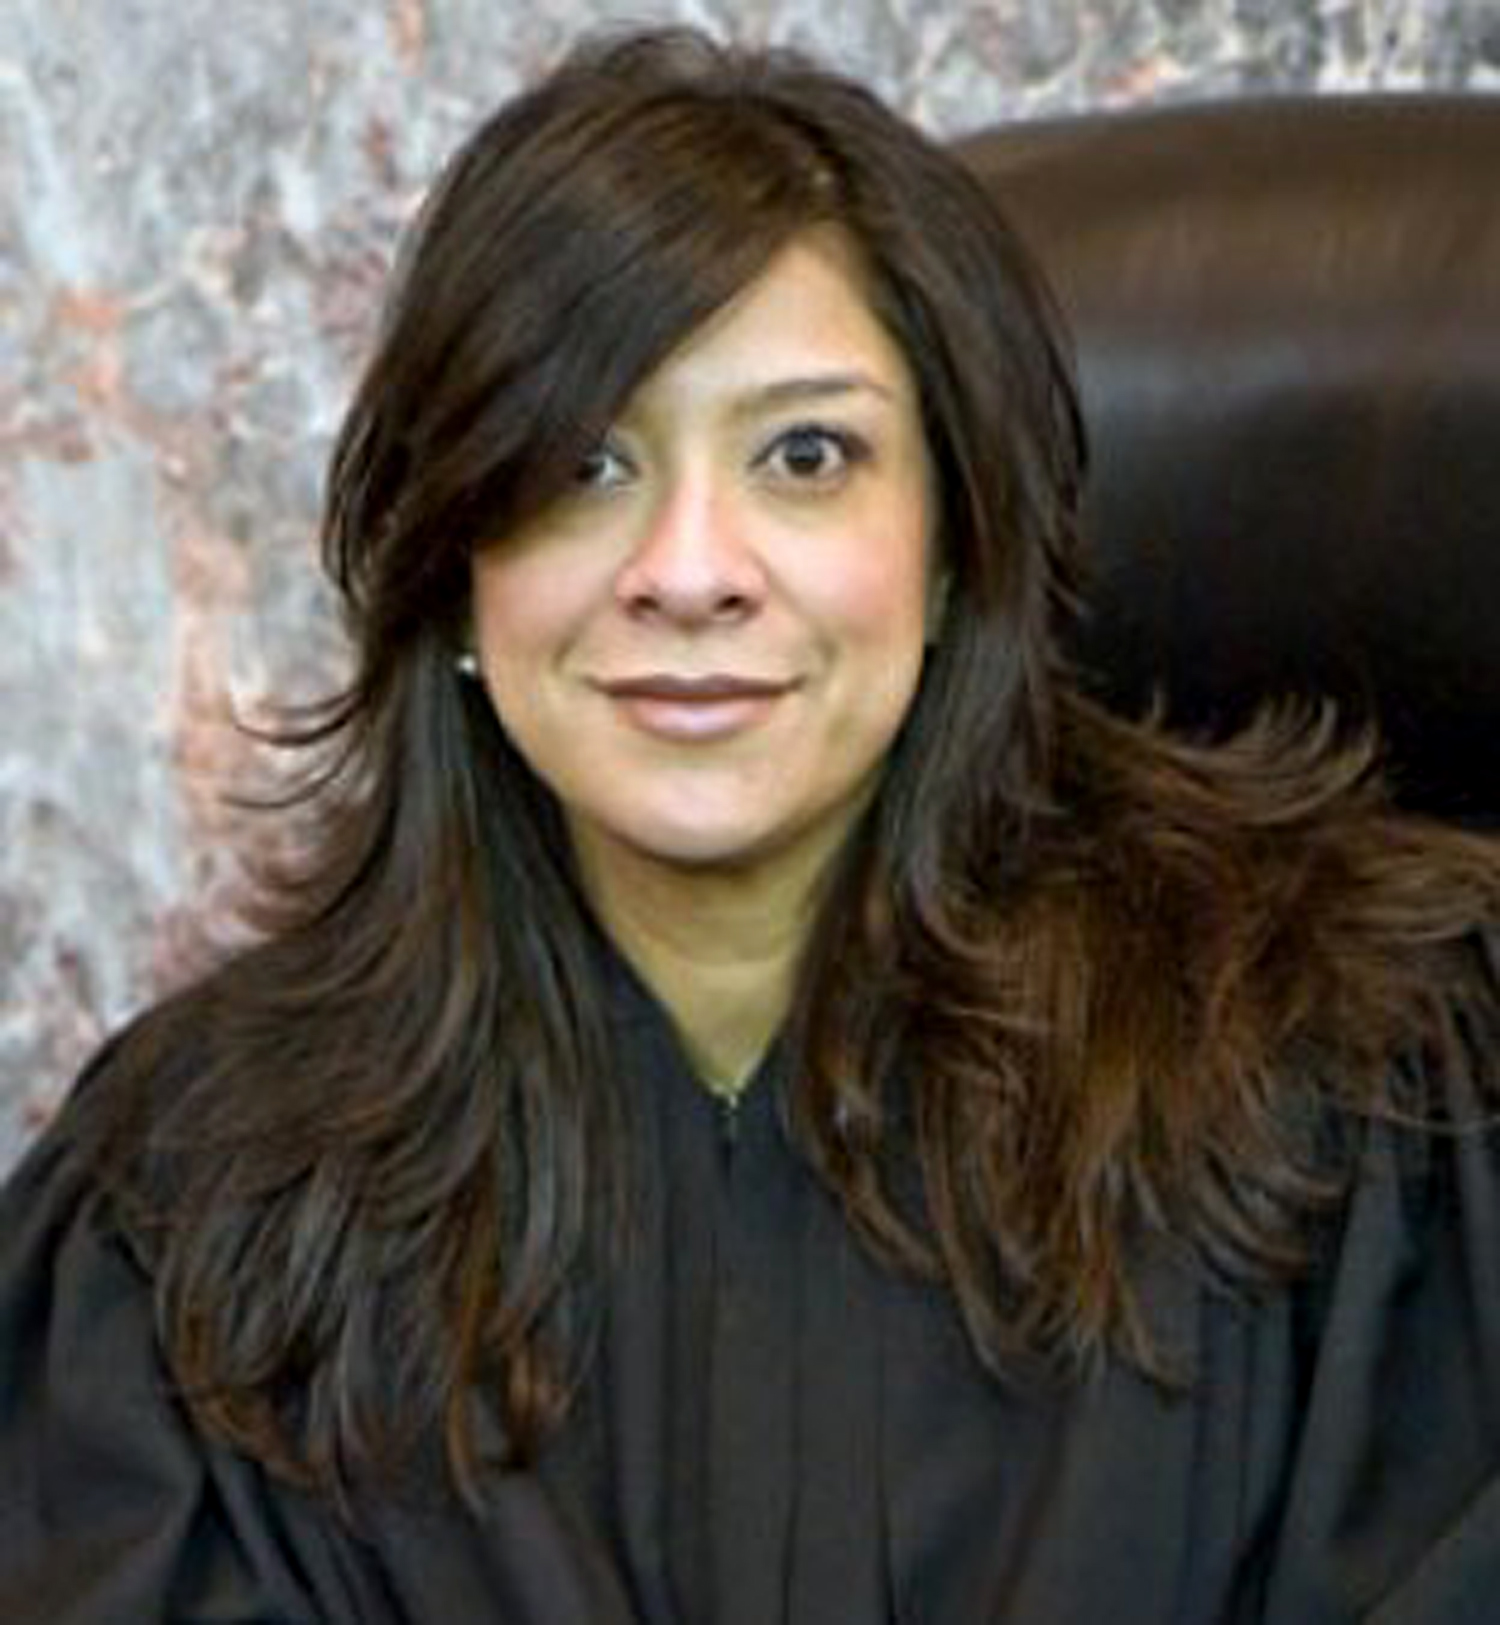 Judge Esther Salas